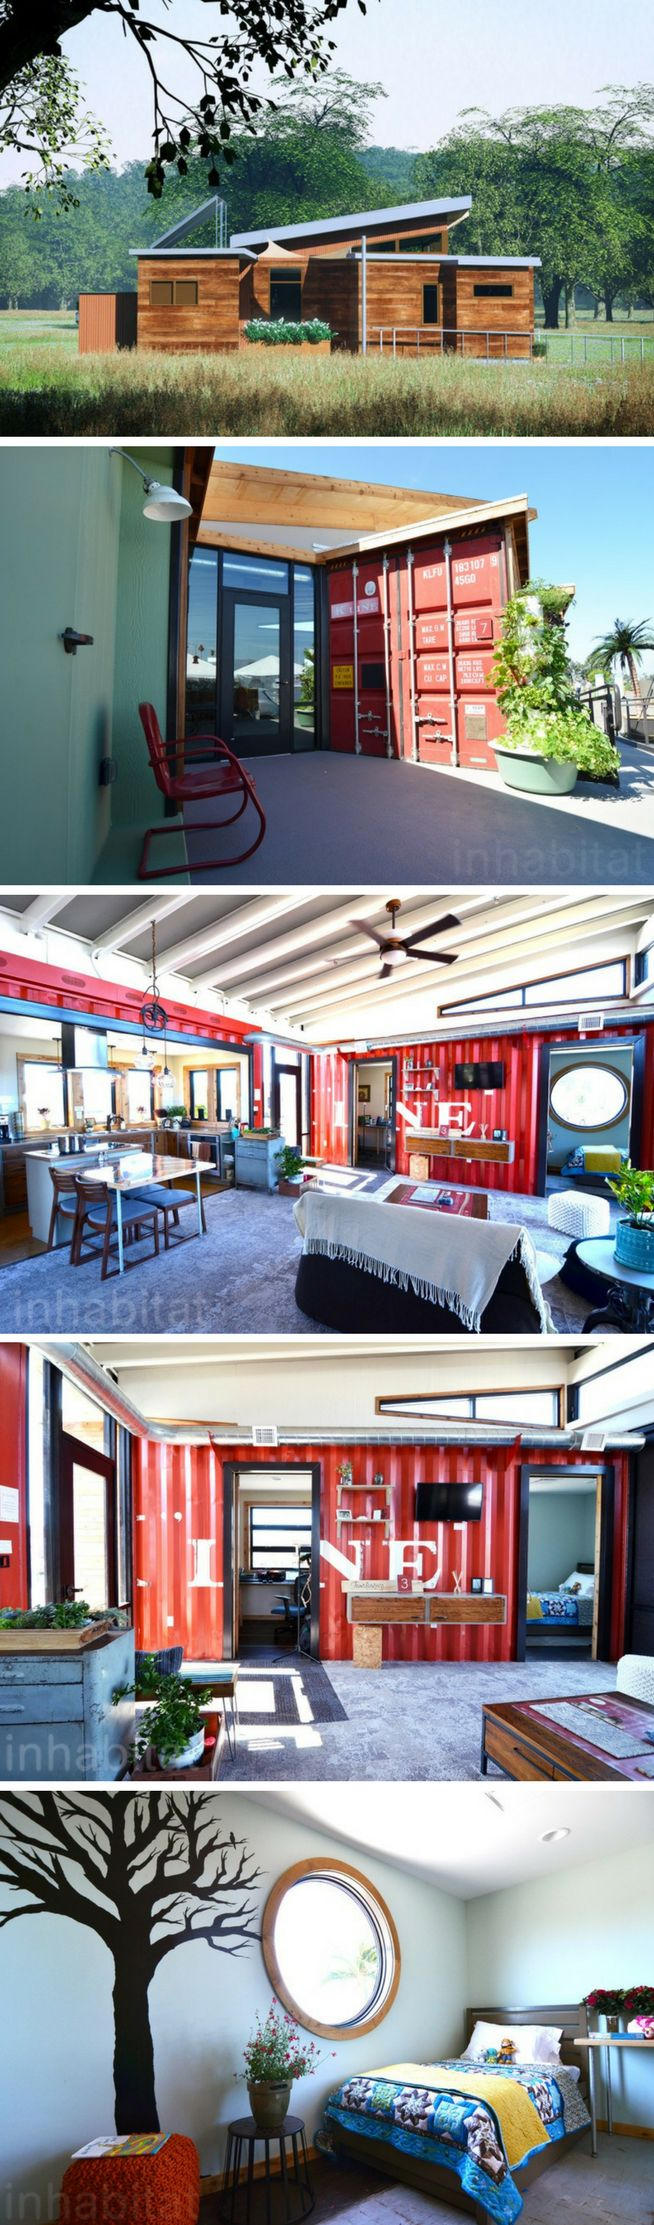 THE NEST SHIPPING CONTAINER HOME #ShippingContainerHomes